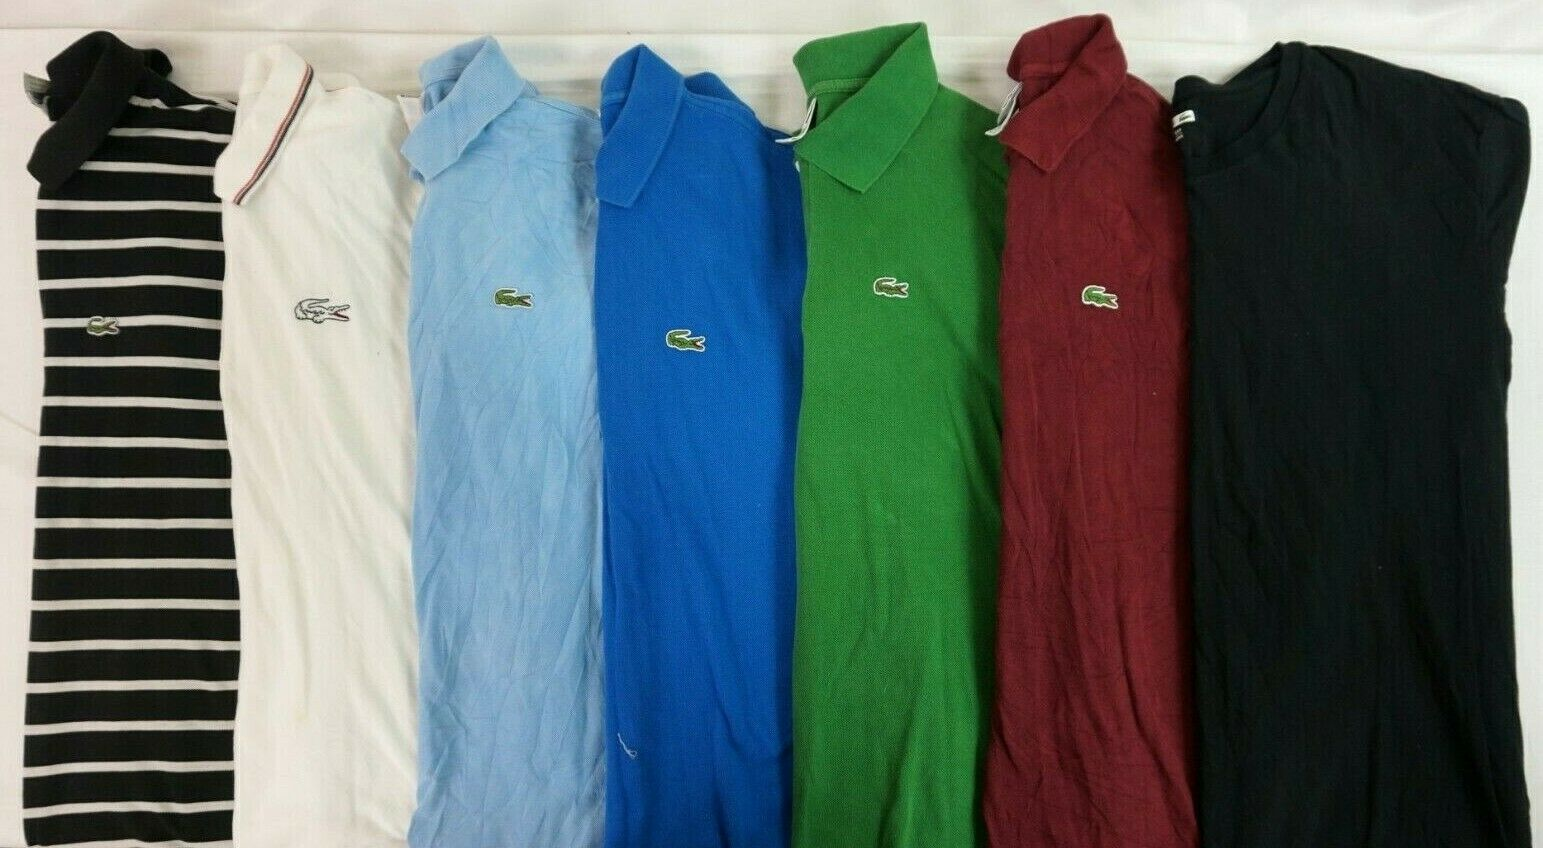 LACOSTE Lot of 7 Men's Short Sleeve Polo Shirts 7   US 2XL